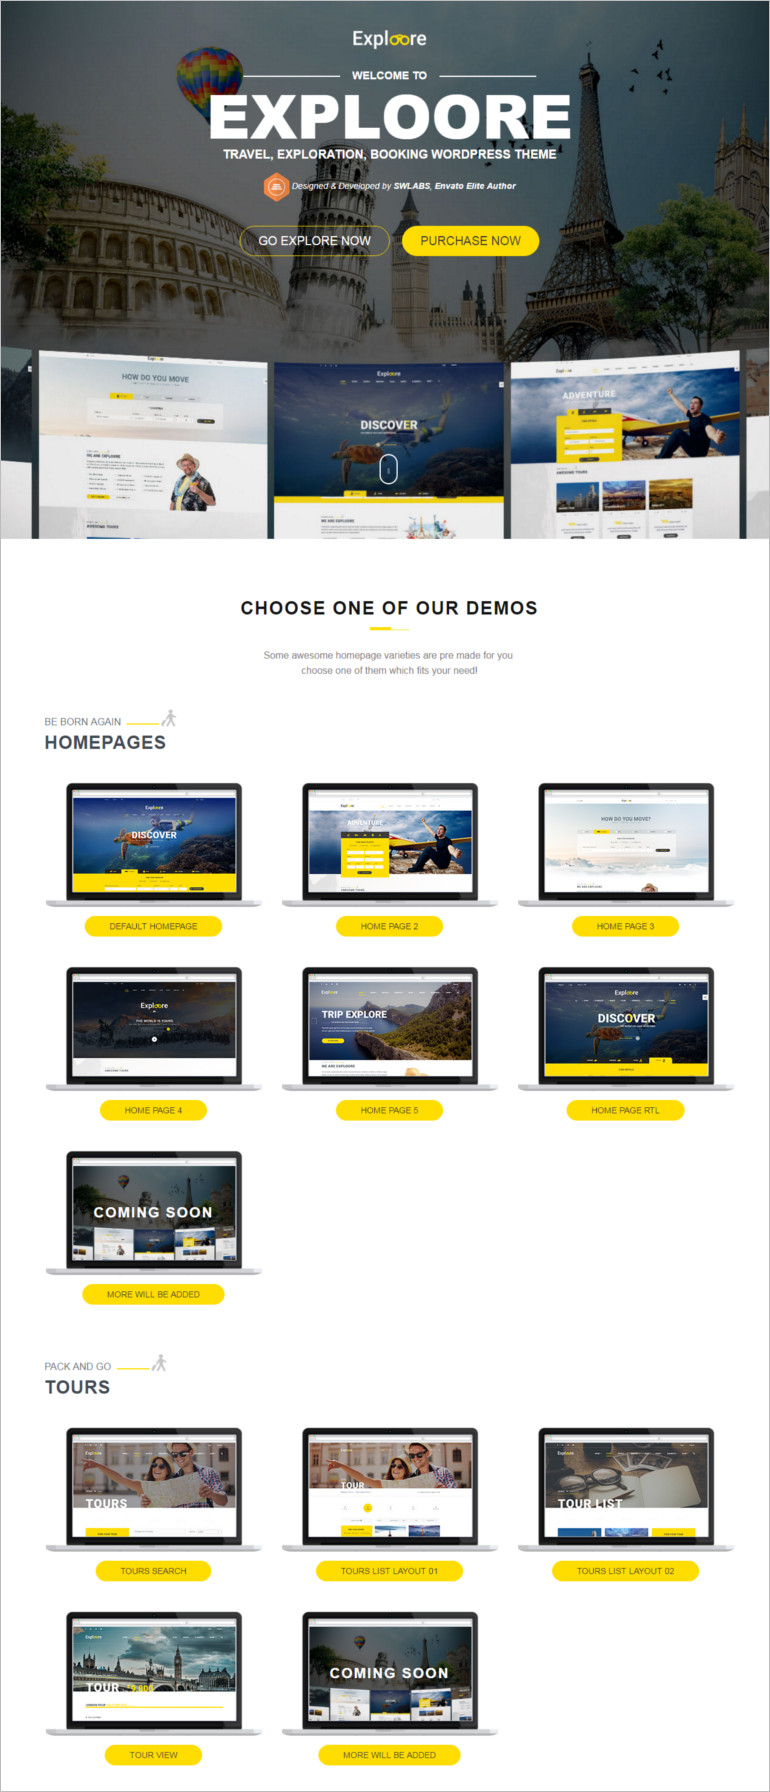 EXPLOORE booking wordpress theme